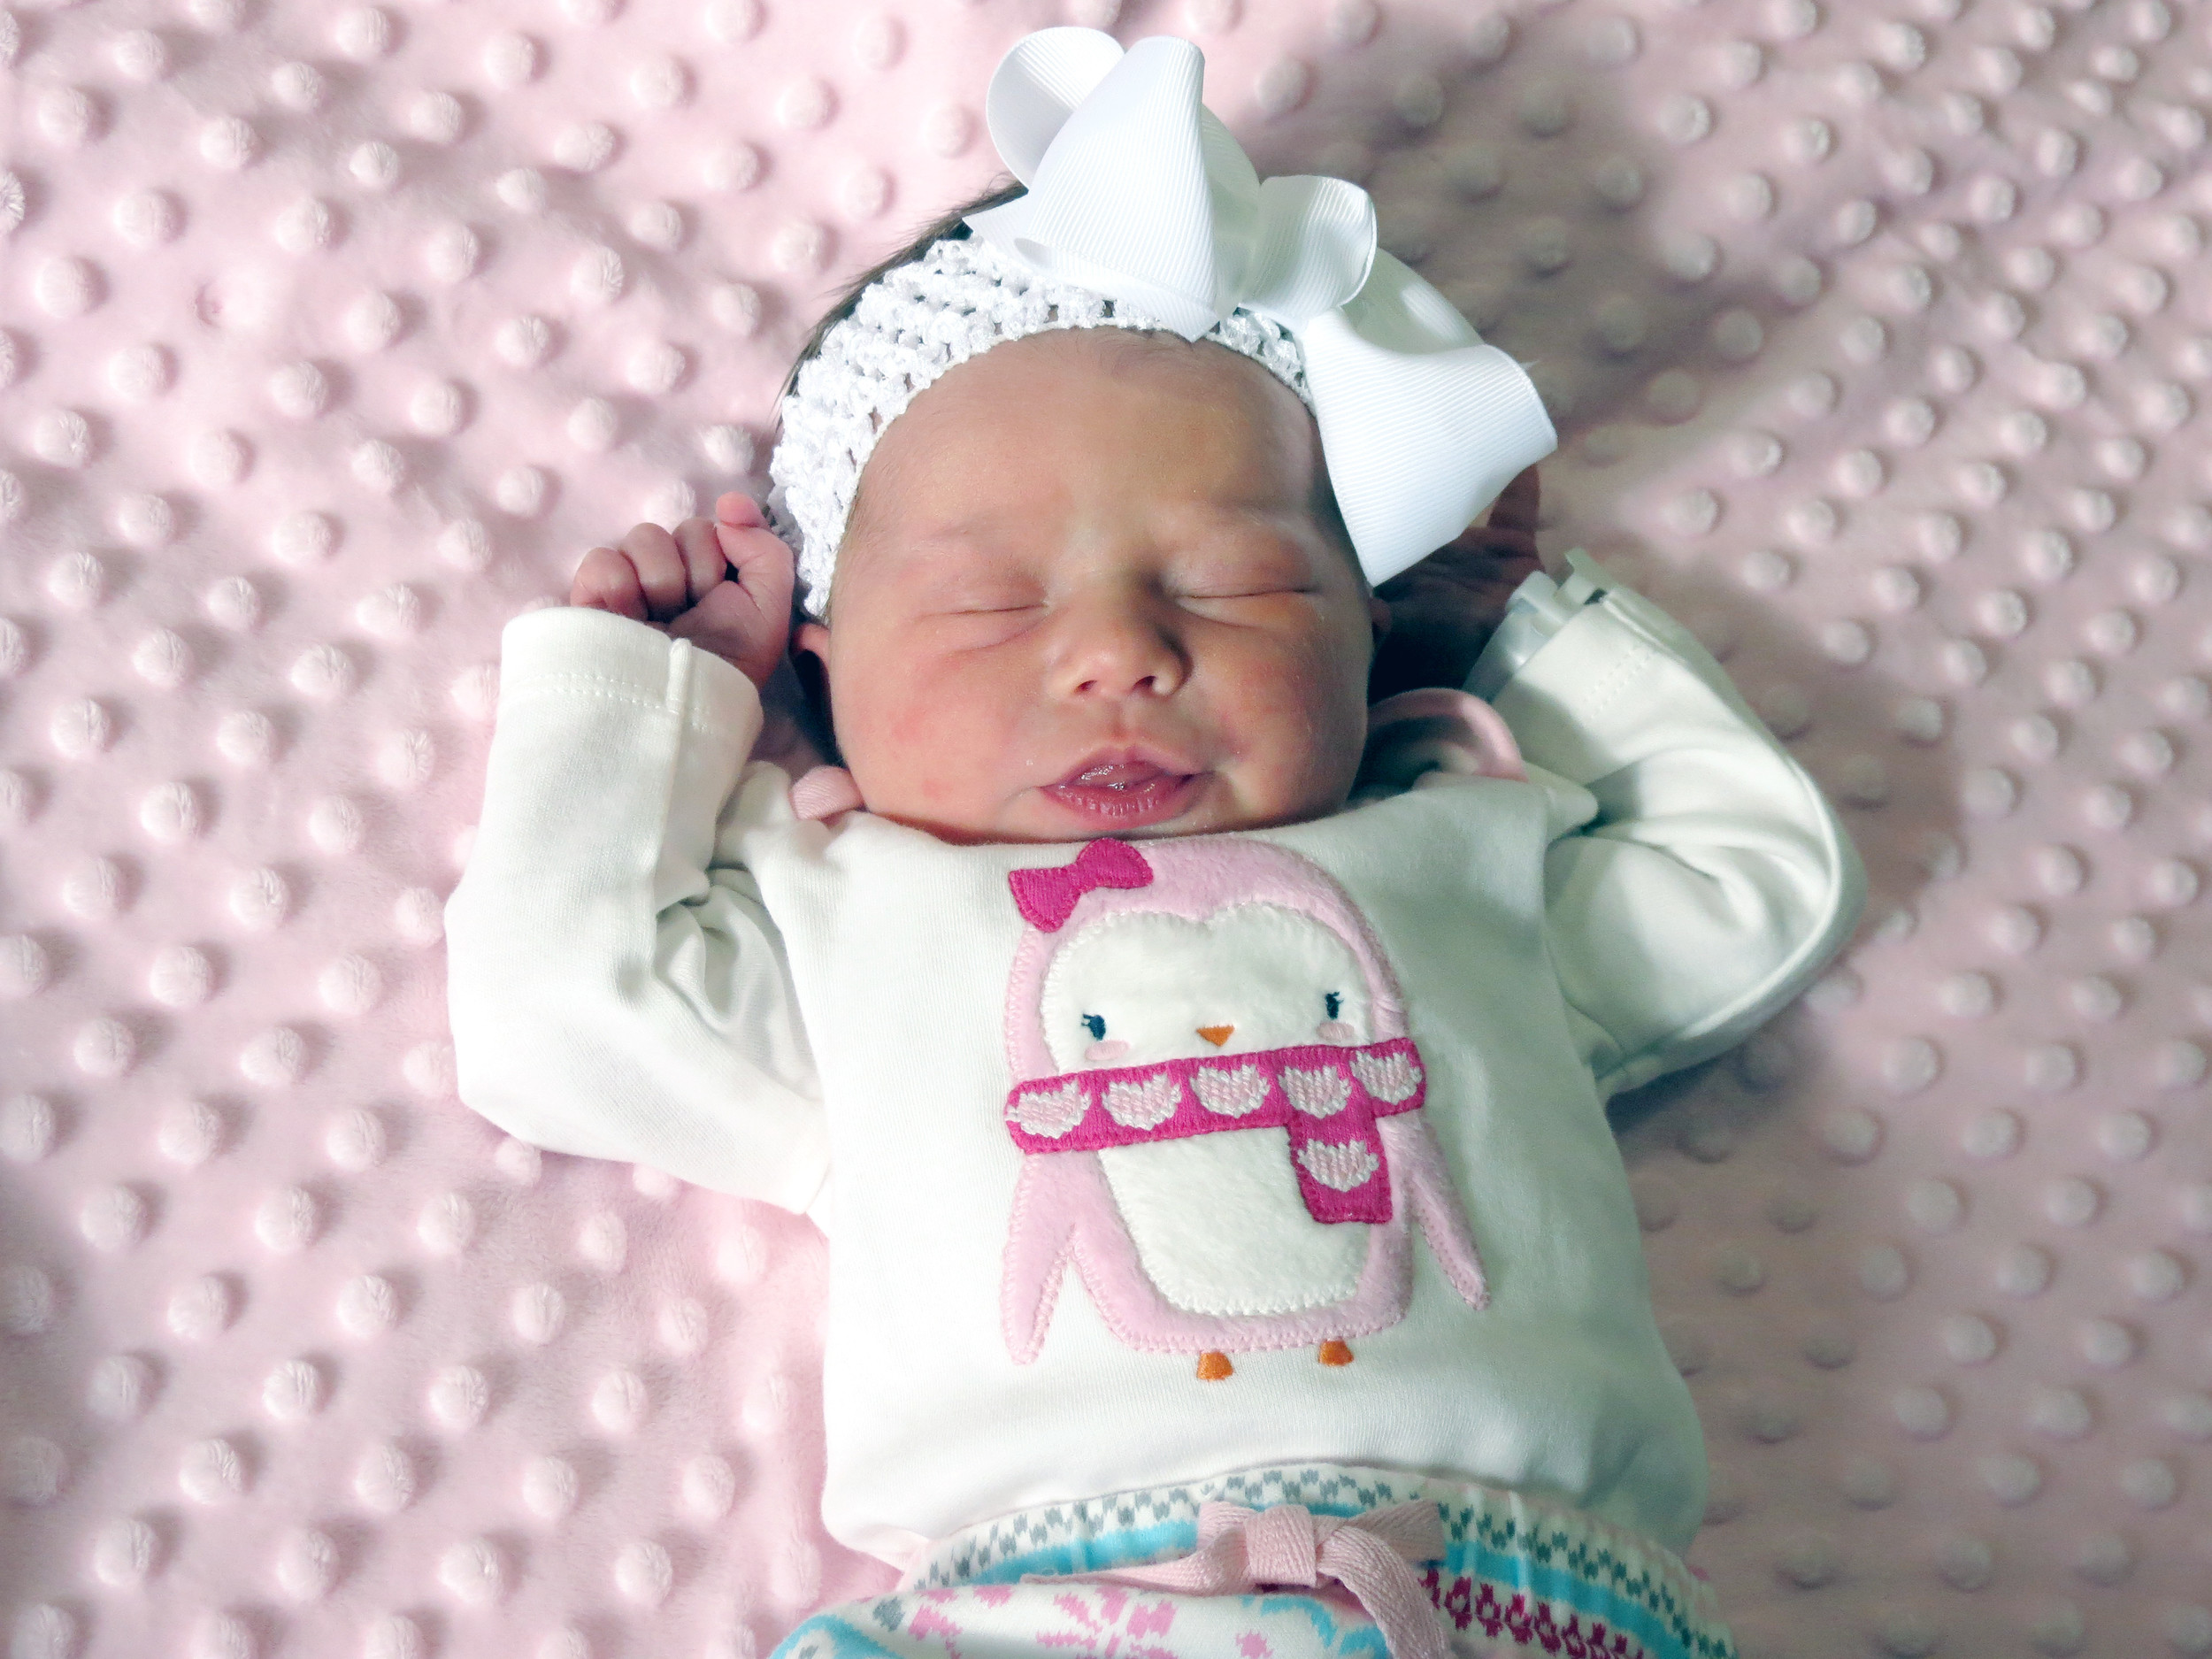 13a3364456f93 Cookeville Regional saw more girls born in 2016 | Herald Citizen